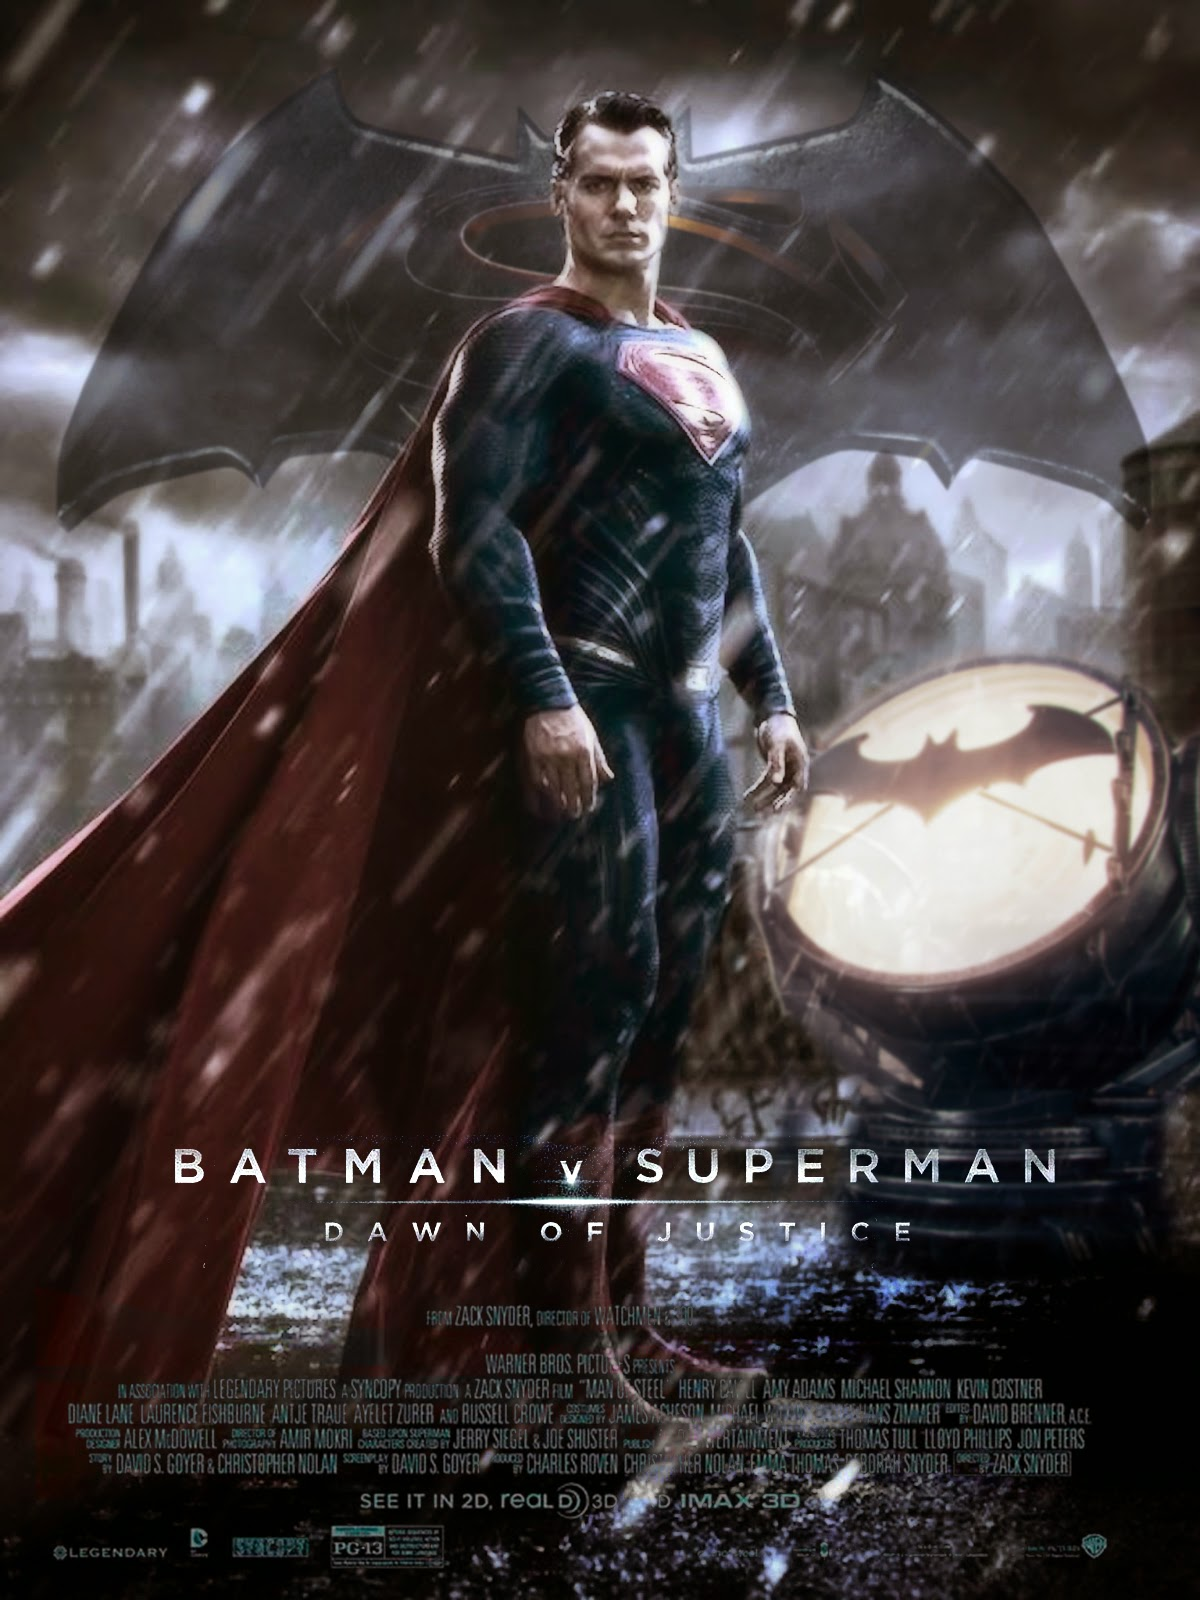 Batman v Superman: Dawn of Justice Superman Character Poster by GeekSummit